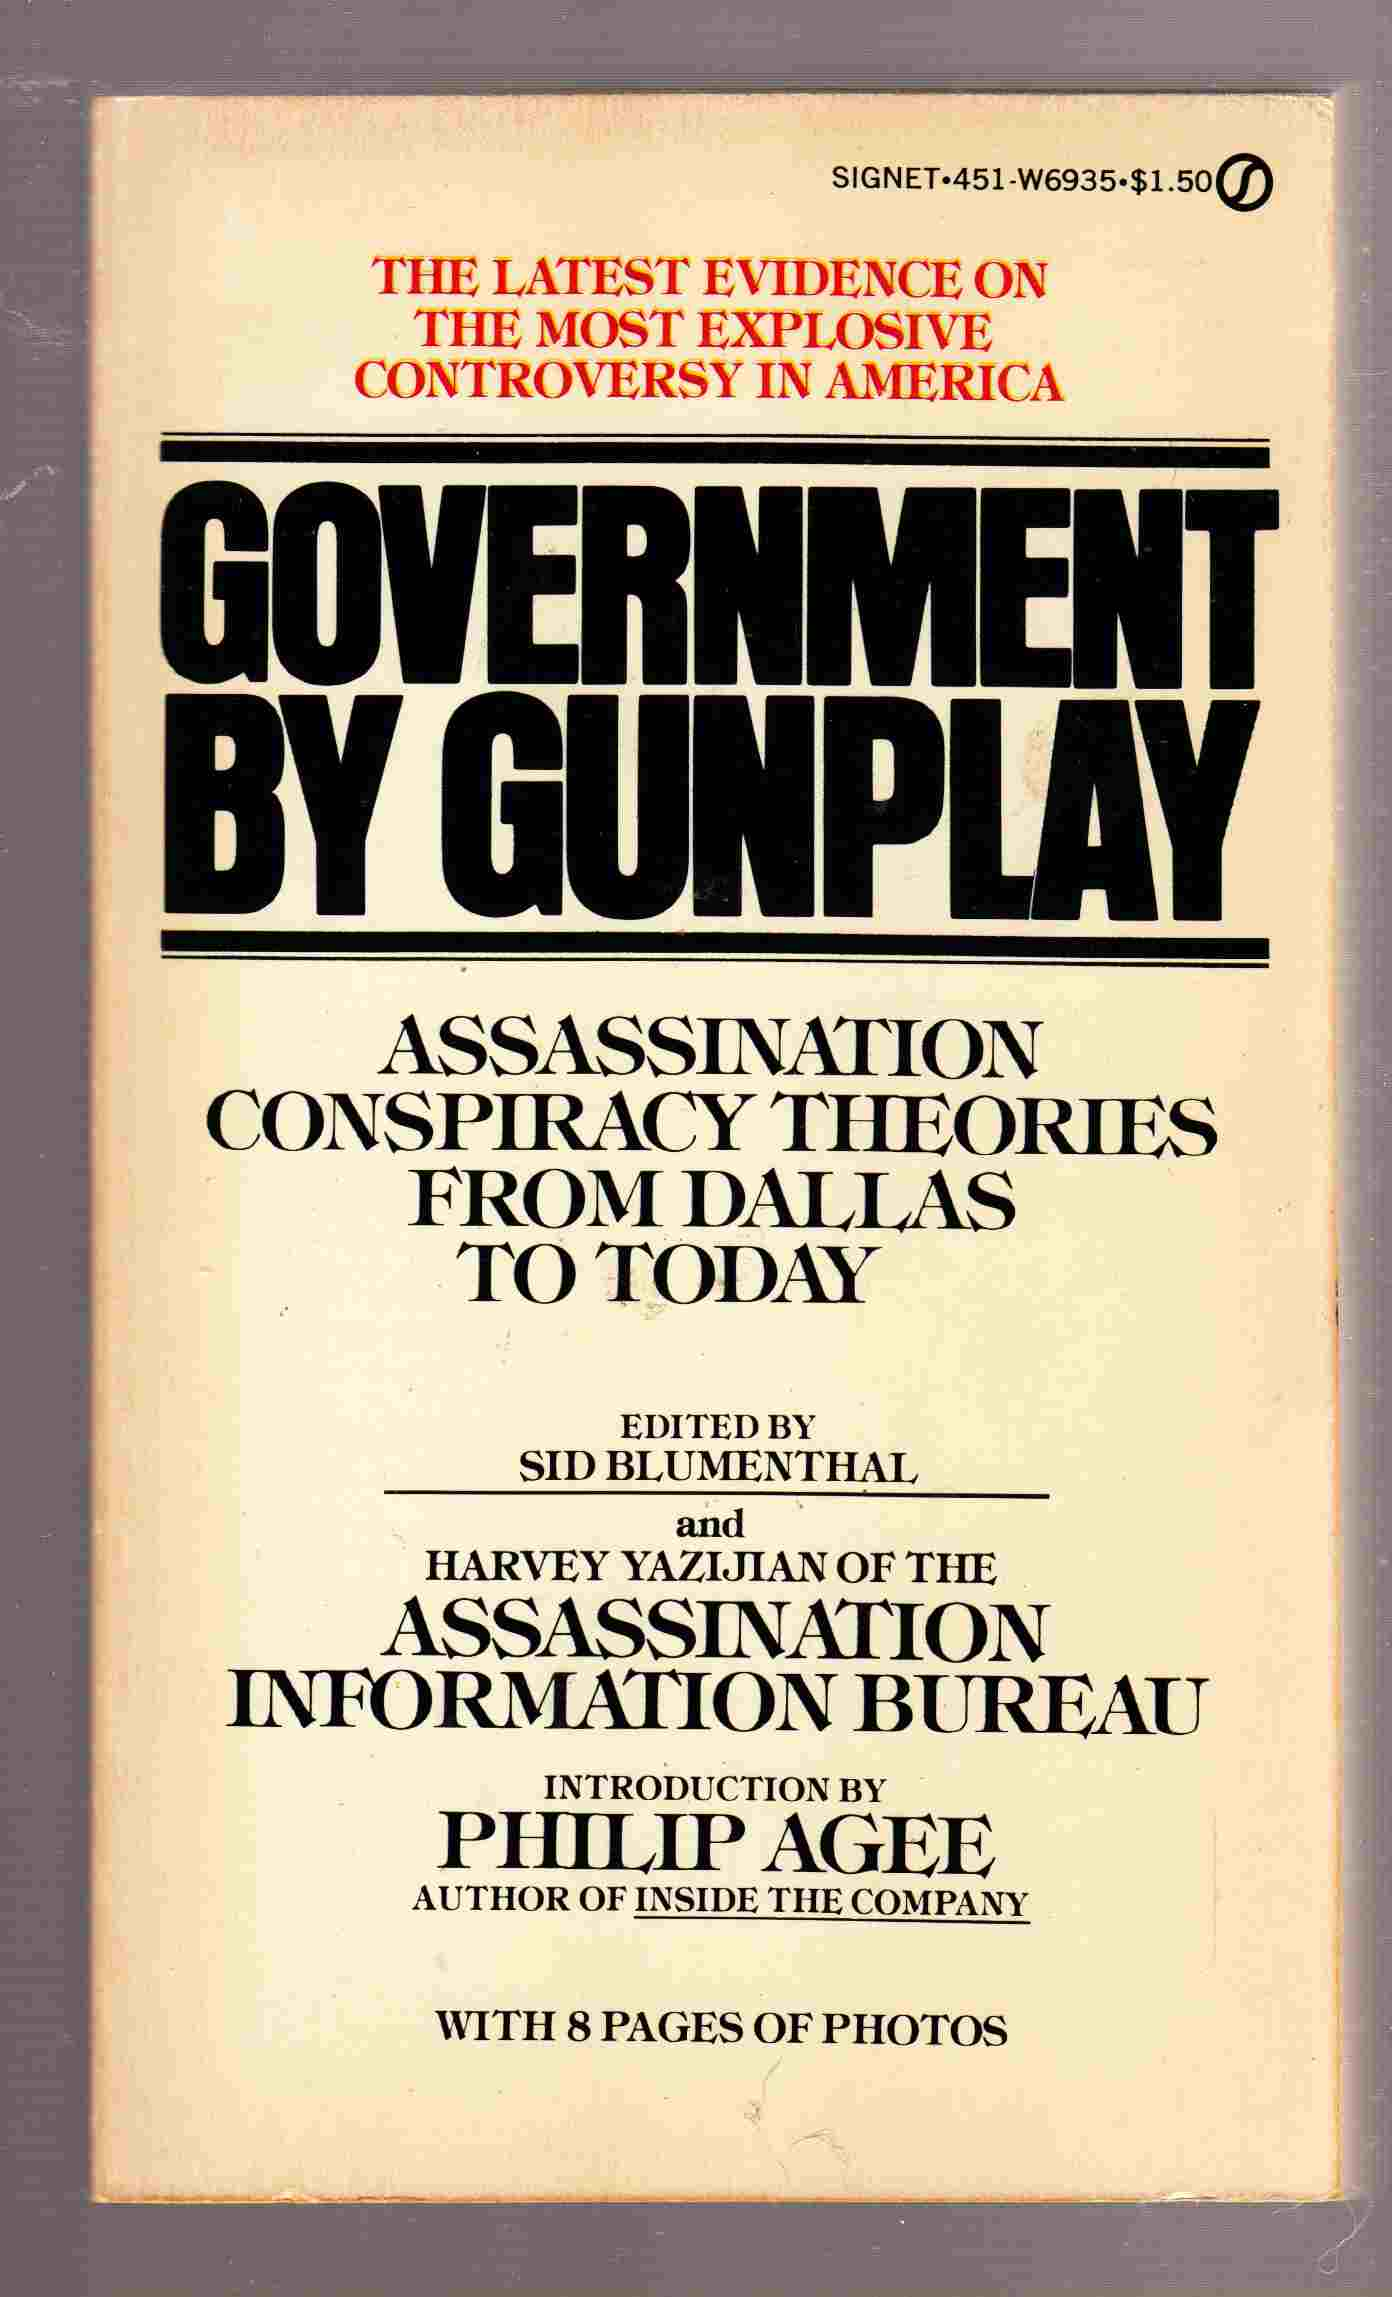 Image for Government by Gunplay Assassination Conspiracy Theories from Dallas to Today